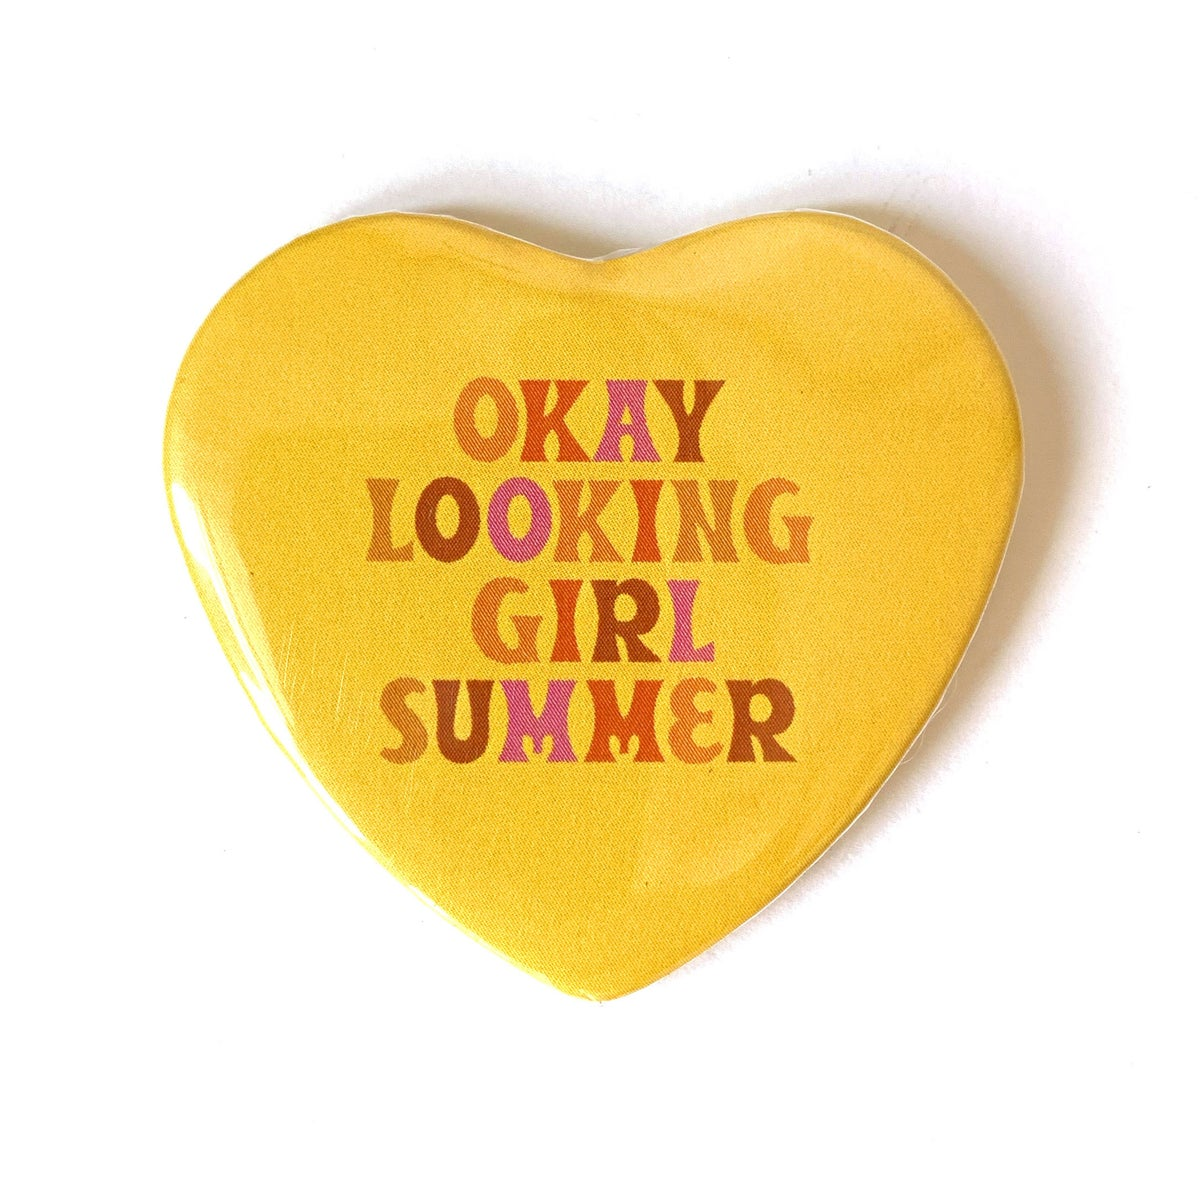 Image of OKAY LOOKING GIRL SUMMER - Heart Shaped Button